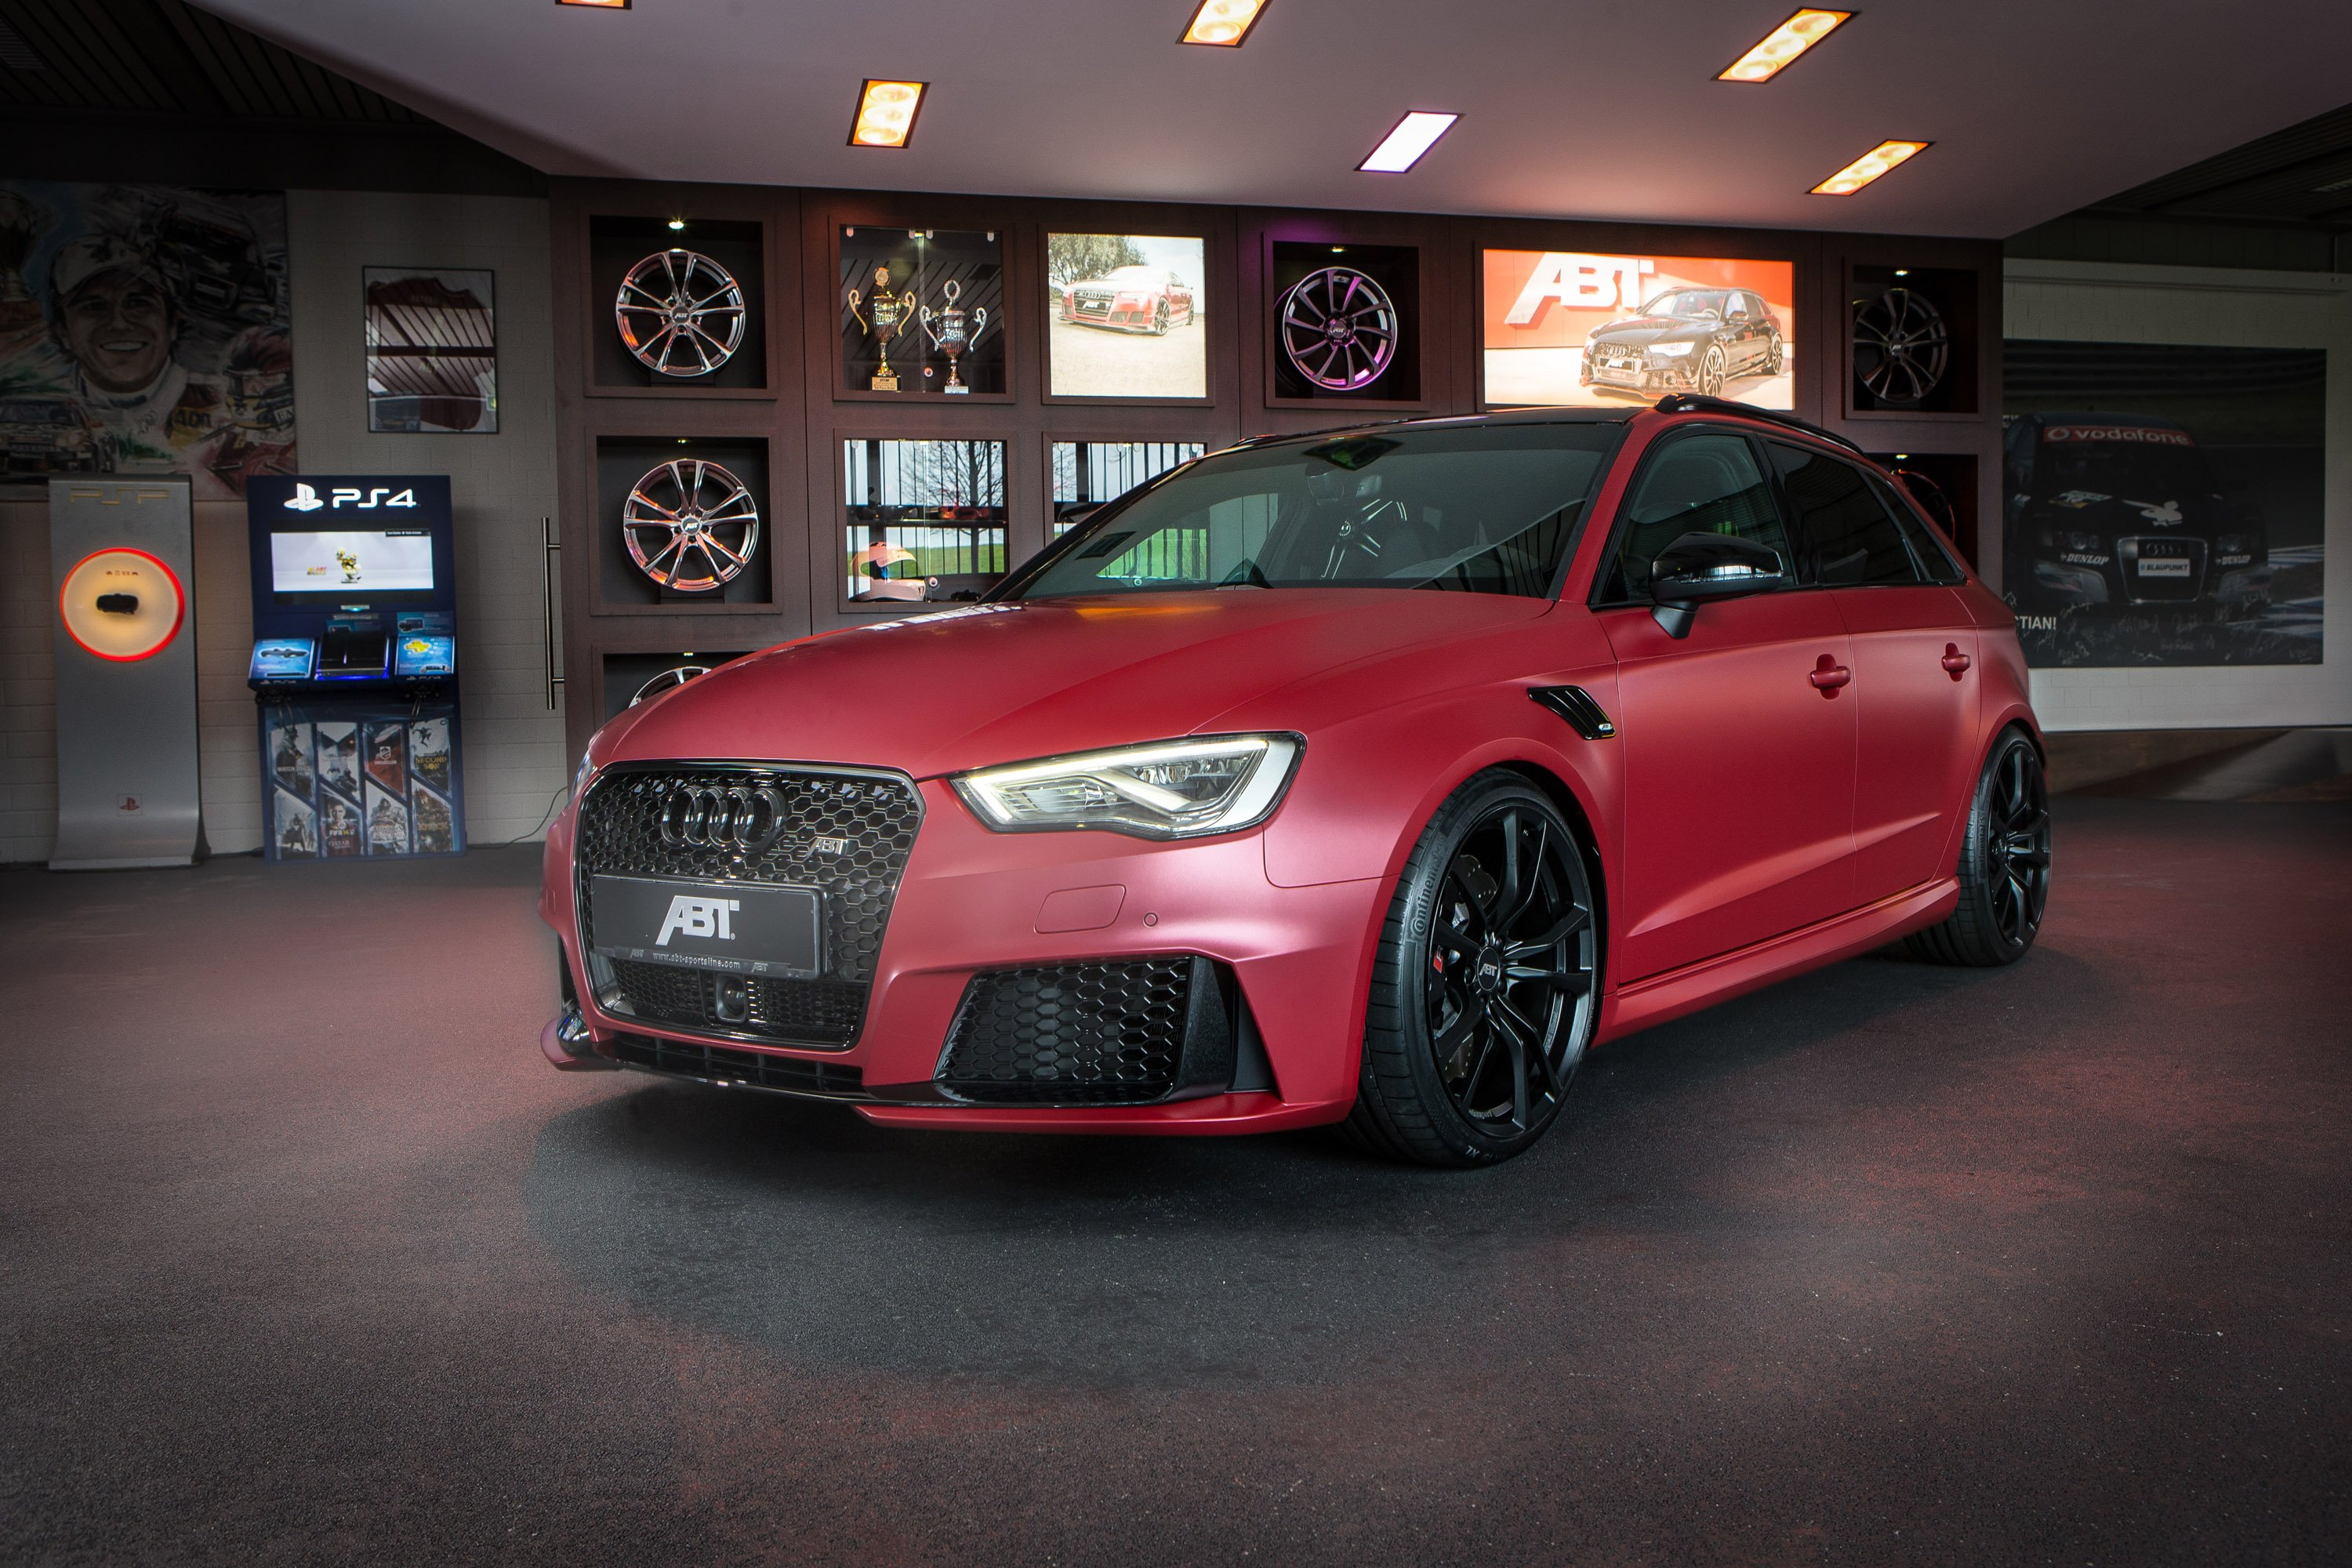 Abt Sportback Cars Audi Rs3 Tuning Wallpaper 3000x2000